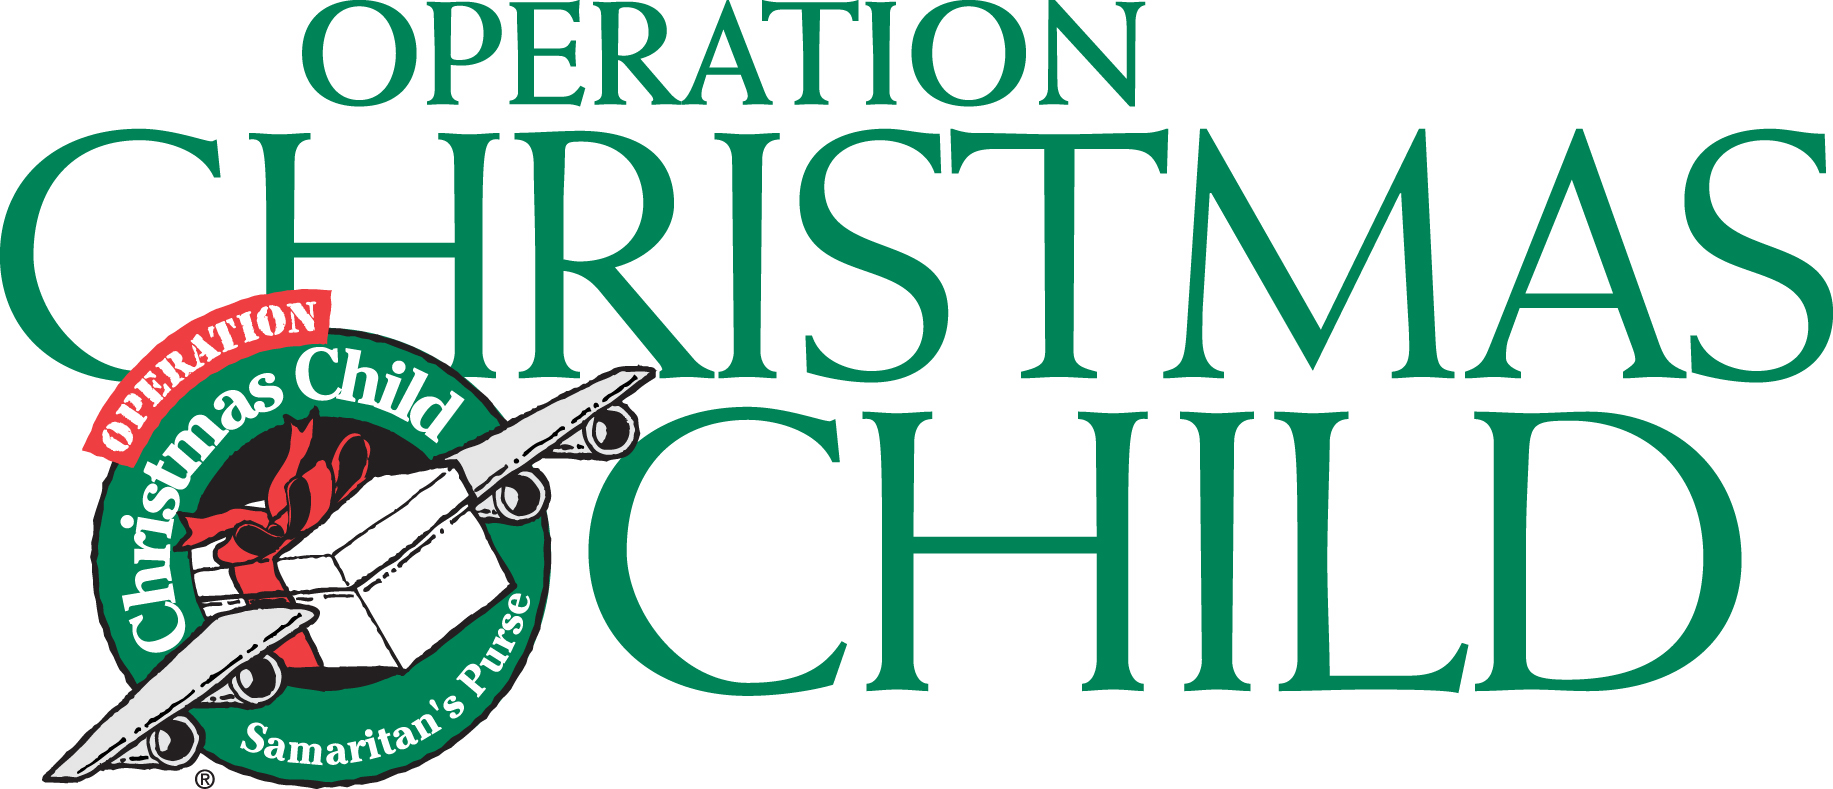 operationchristmaschildlogo.jpg